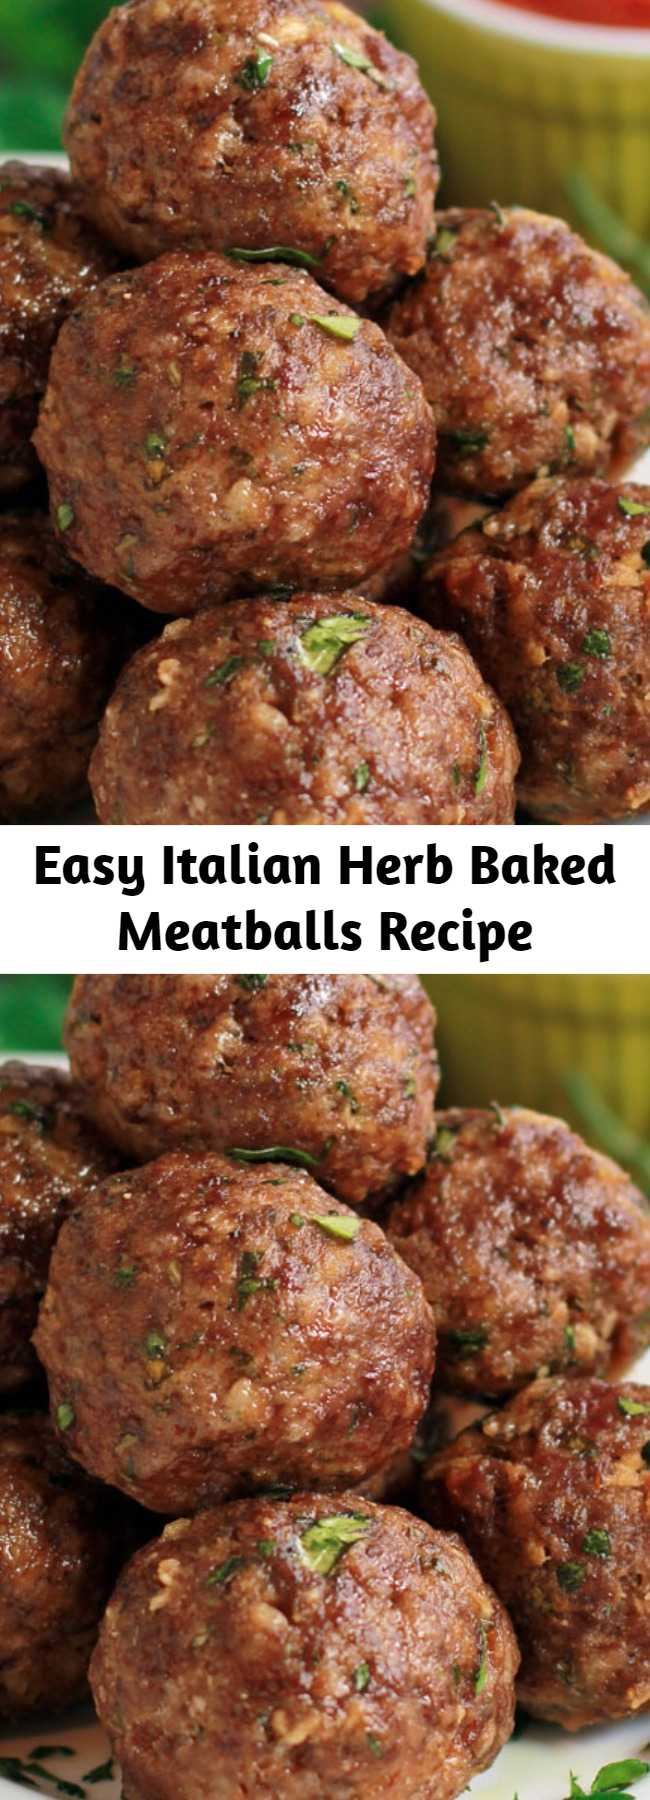 Easy Italian Herb Baked Meatballs Recipe - Best Ever Italian Herb Baked Meatballs are the perfect recipe to learn how to make meatballs the right way. They are truly the most amazing meatballs we have ever had. Our baked meatballs are beautifully browned on the outside and tender and juicy on the inside. #meatballs #Italianmeatballs